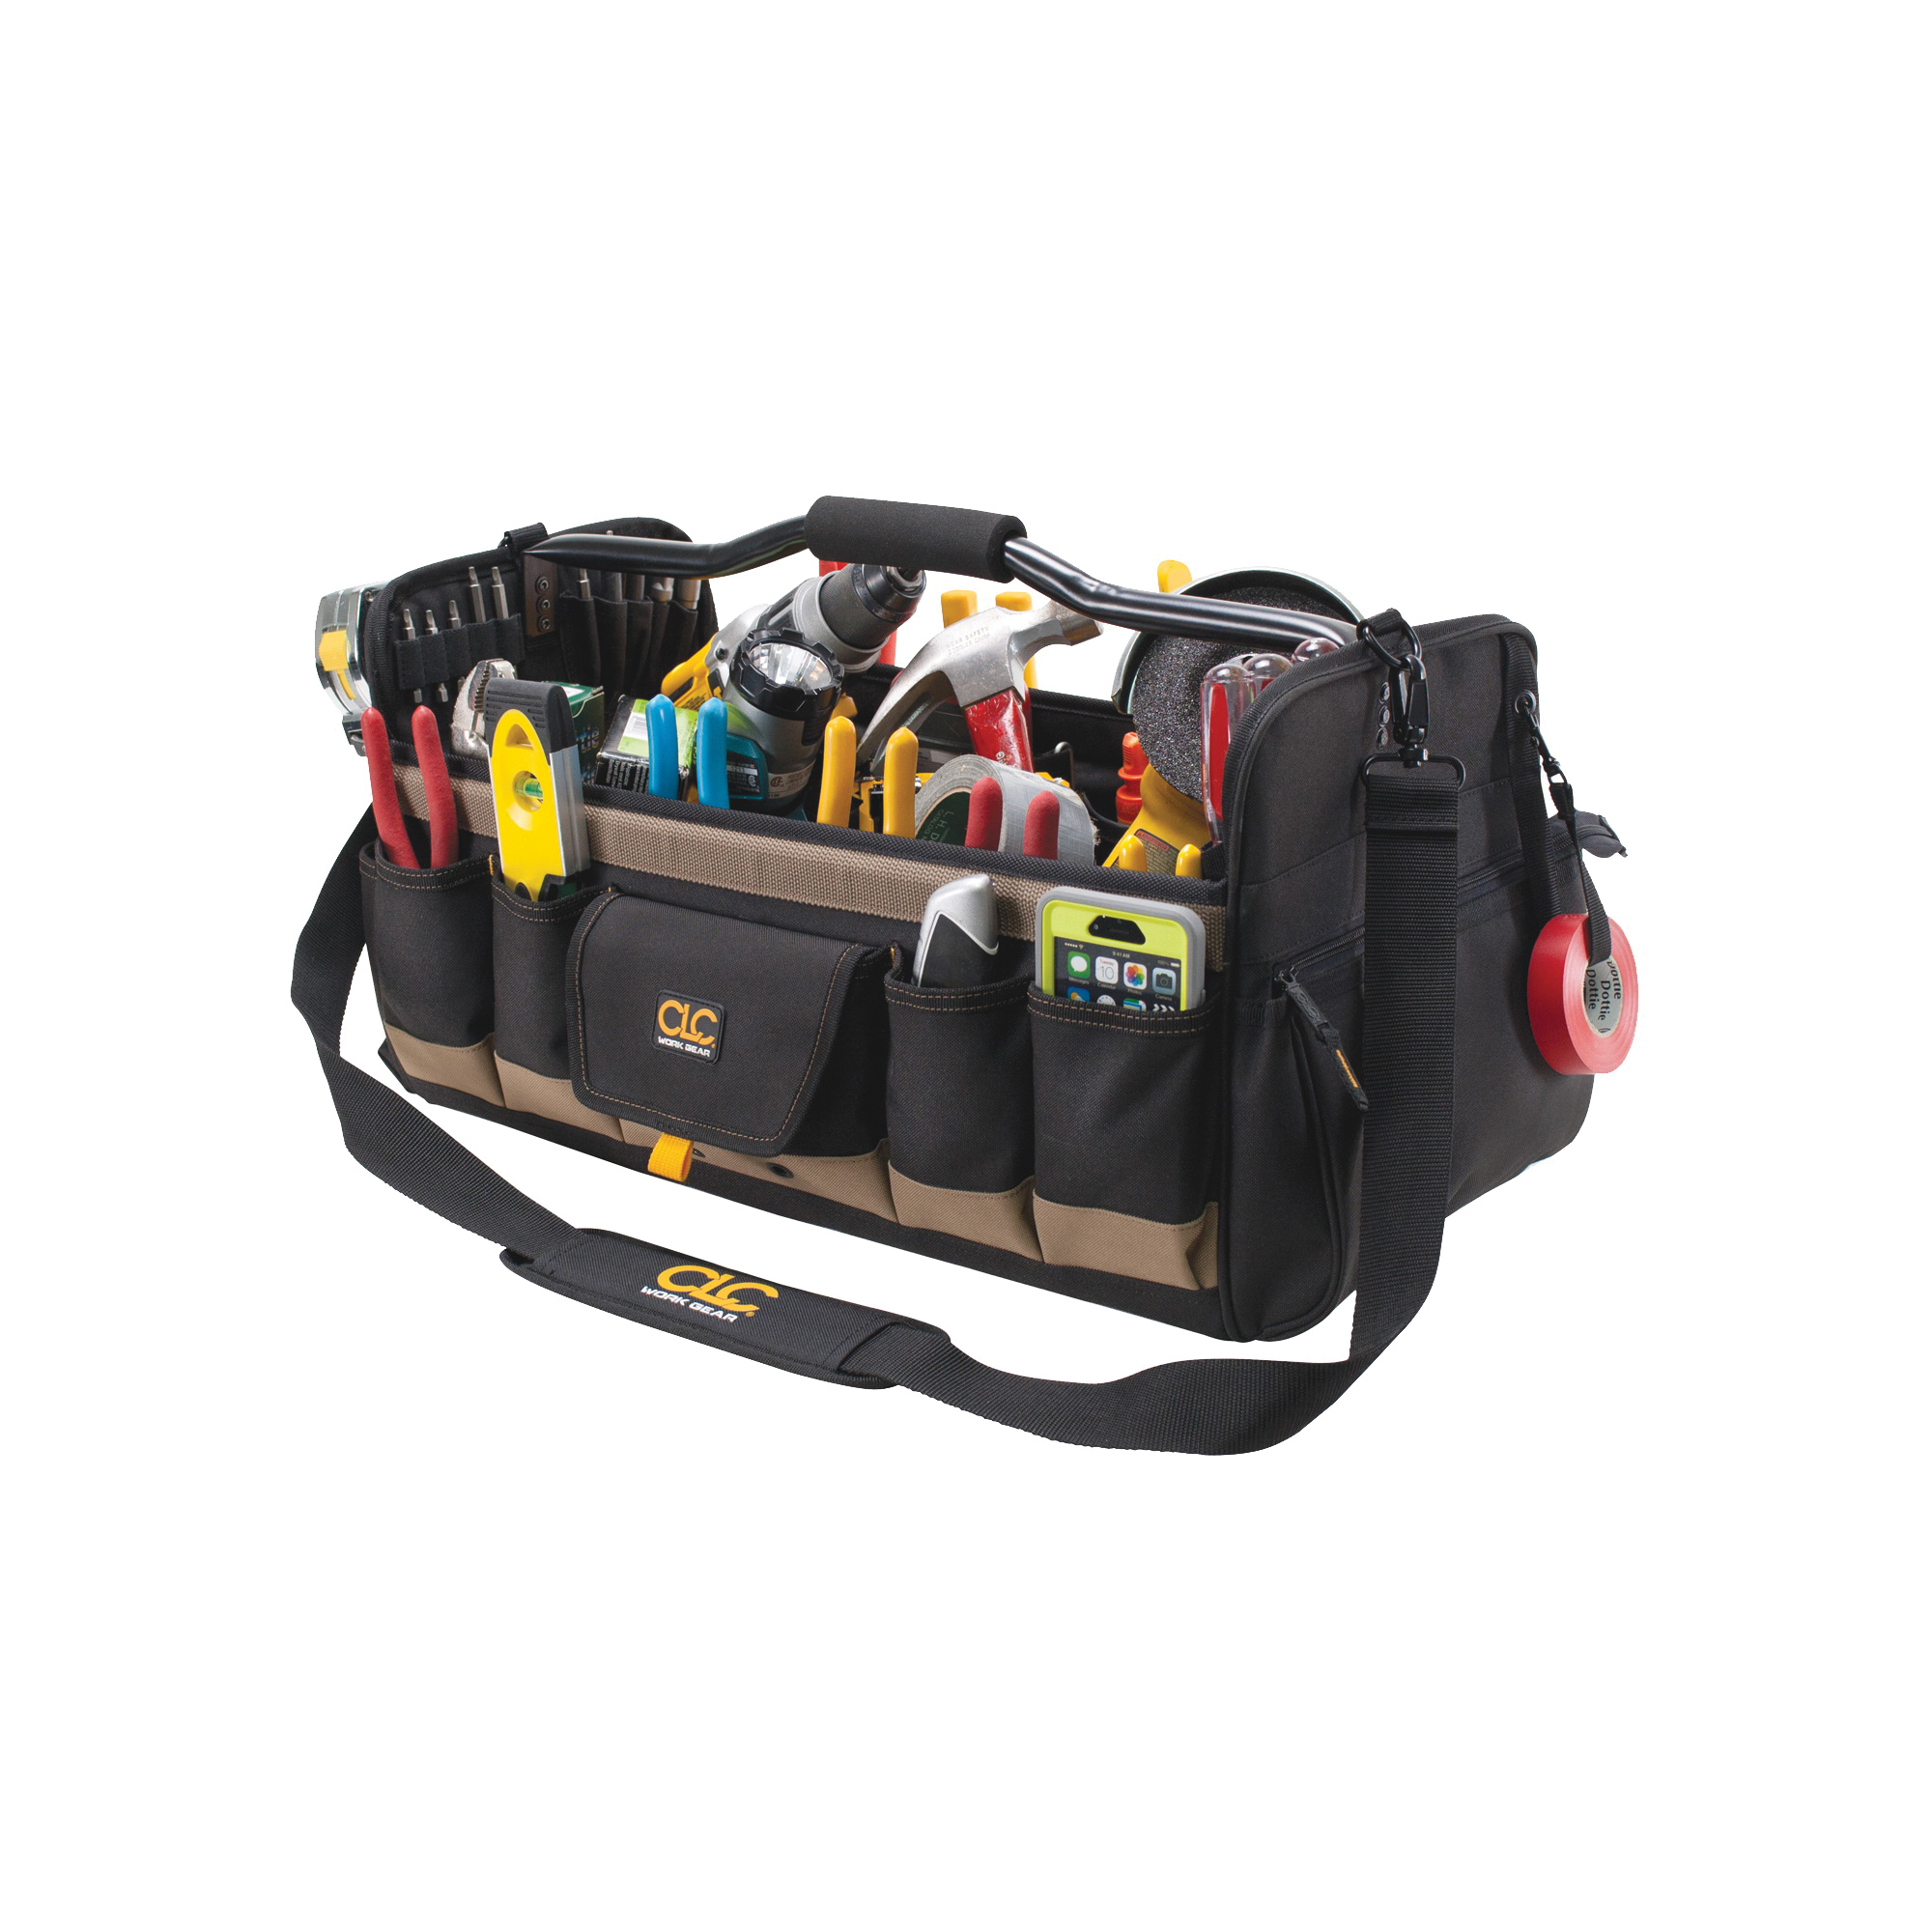 Picture of CLC Tool Works 1579 Open Top Tool Bag, 11 in W, 11 in D, 20 in H, 27 -Pocket, Polyester, Black